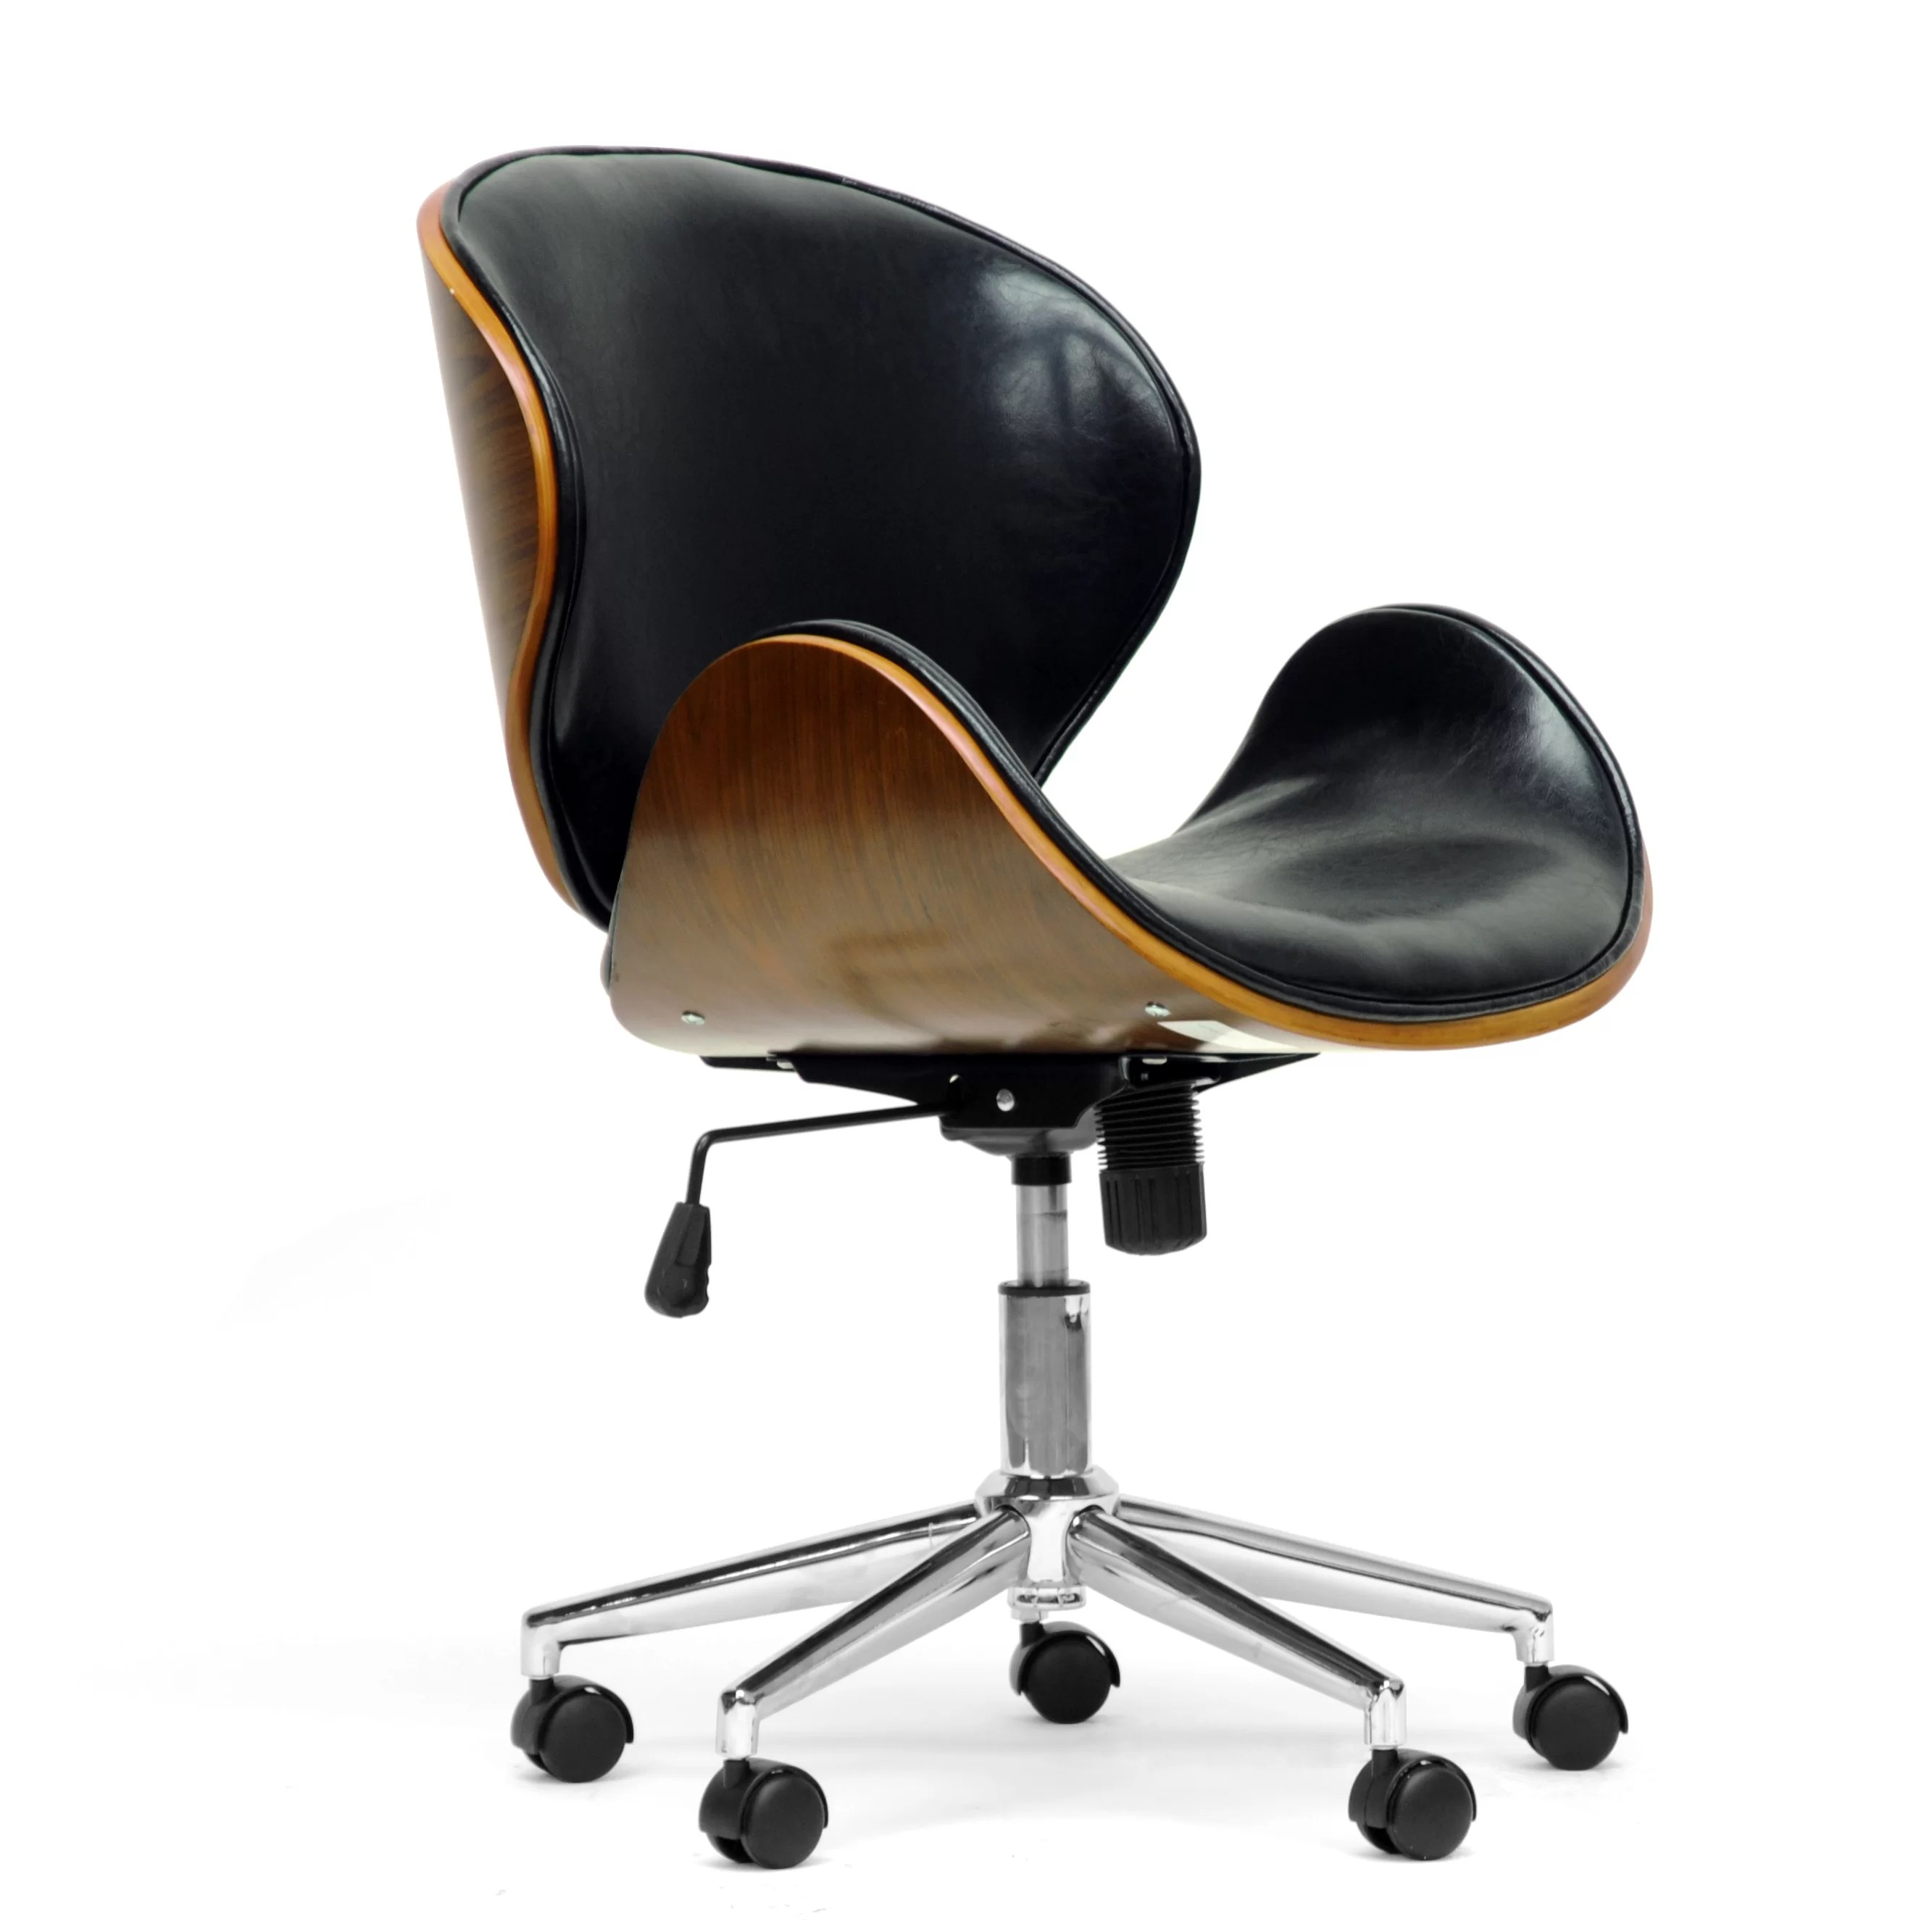 Baxton Chair Wholesale Interiors Baxton Studio Task Chair With Arms